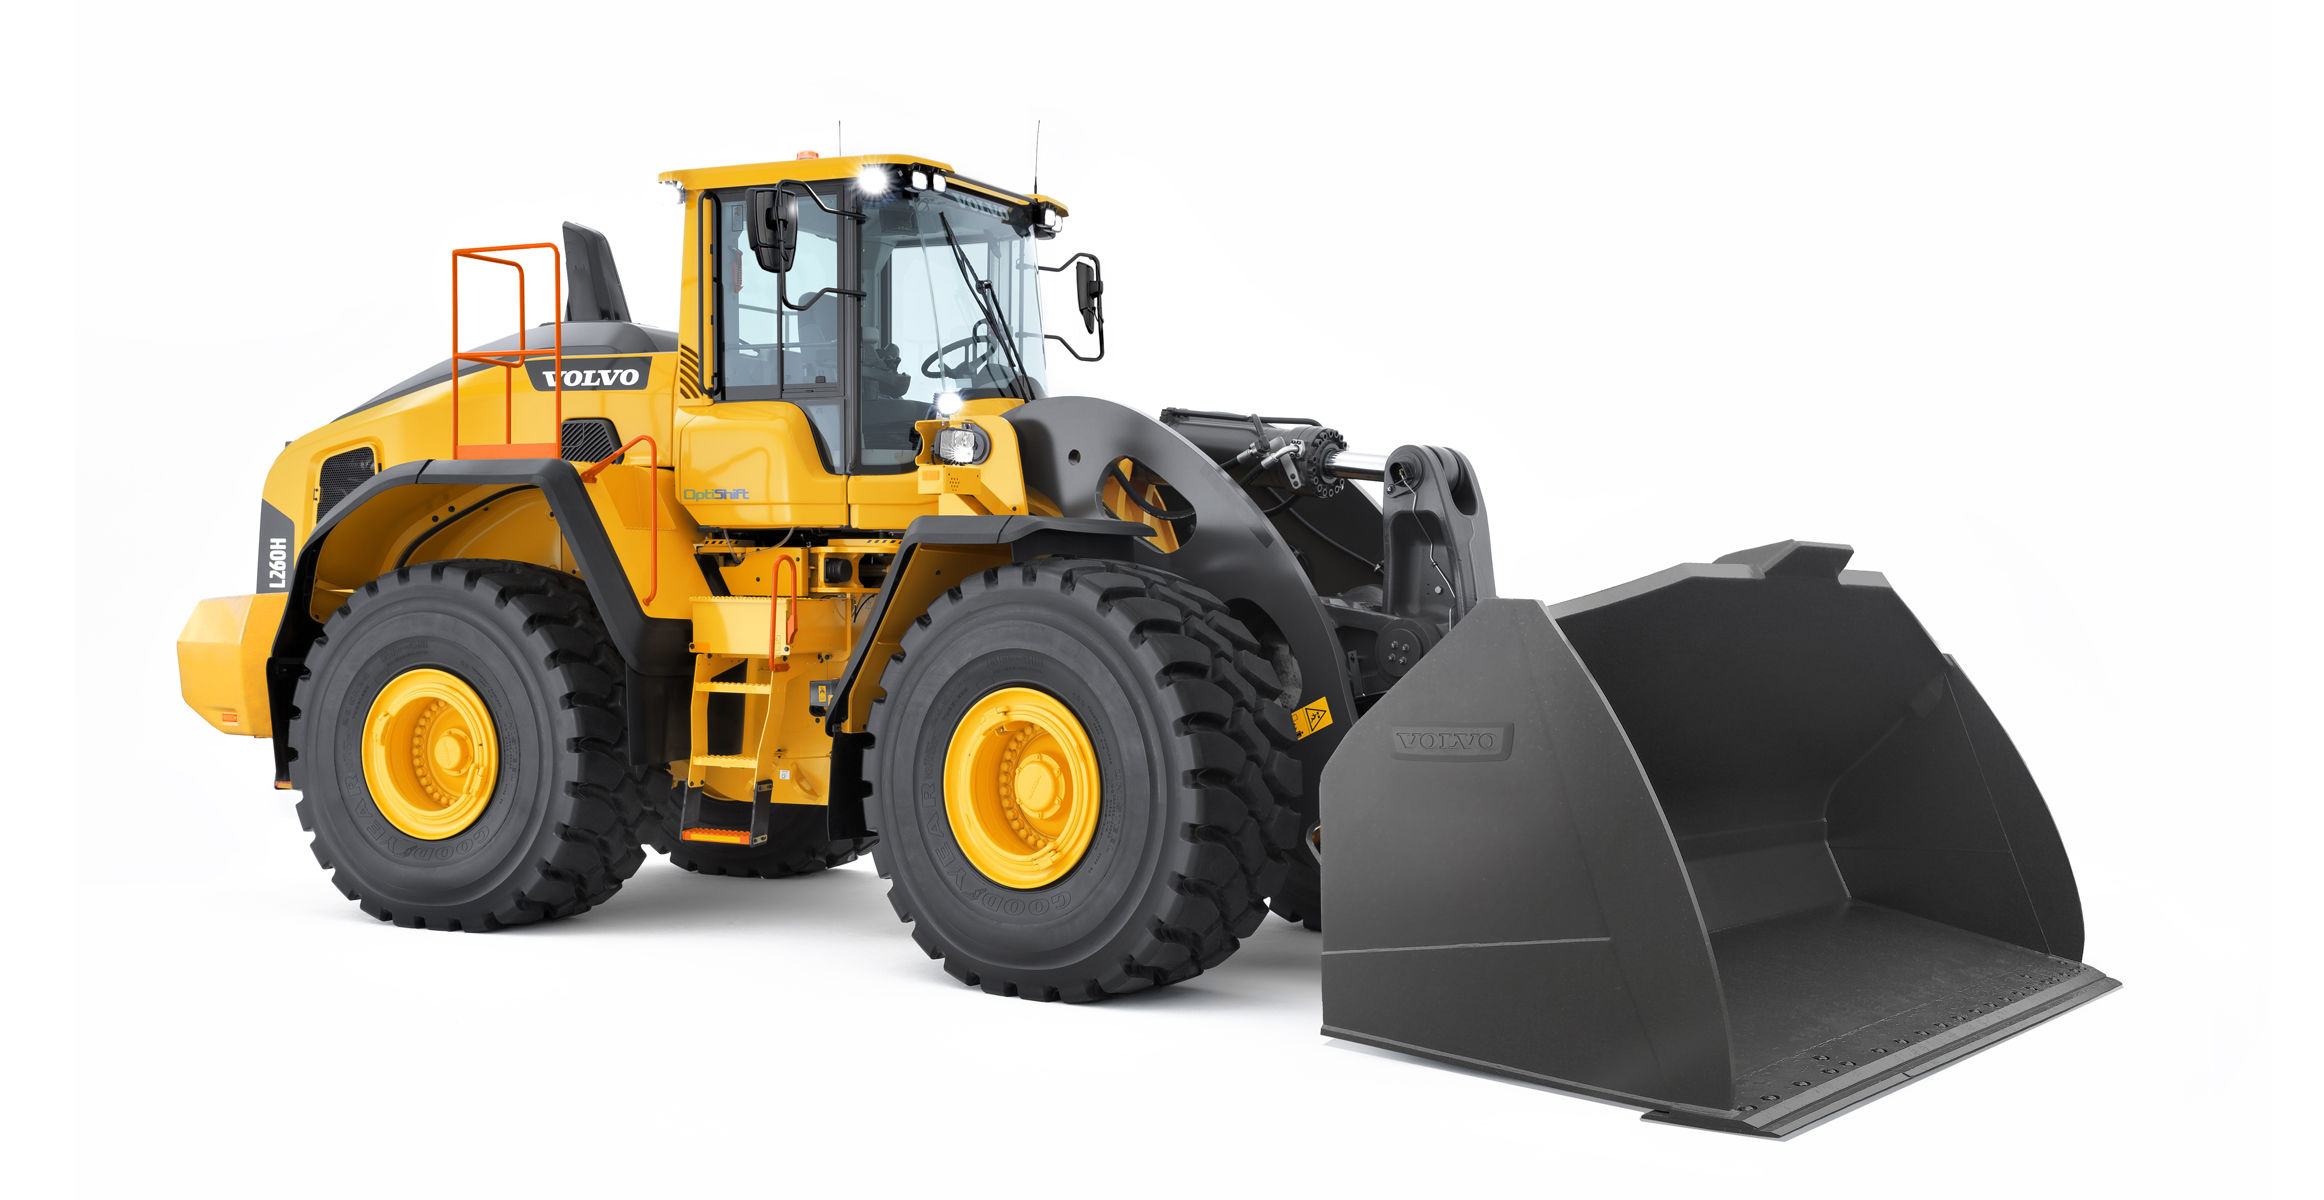 Volvo L260H Front End Loader: Two full buckets for one ...